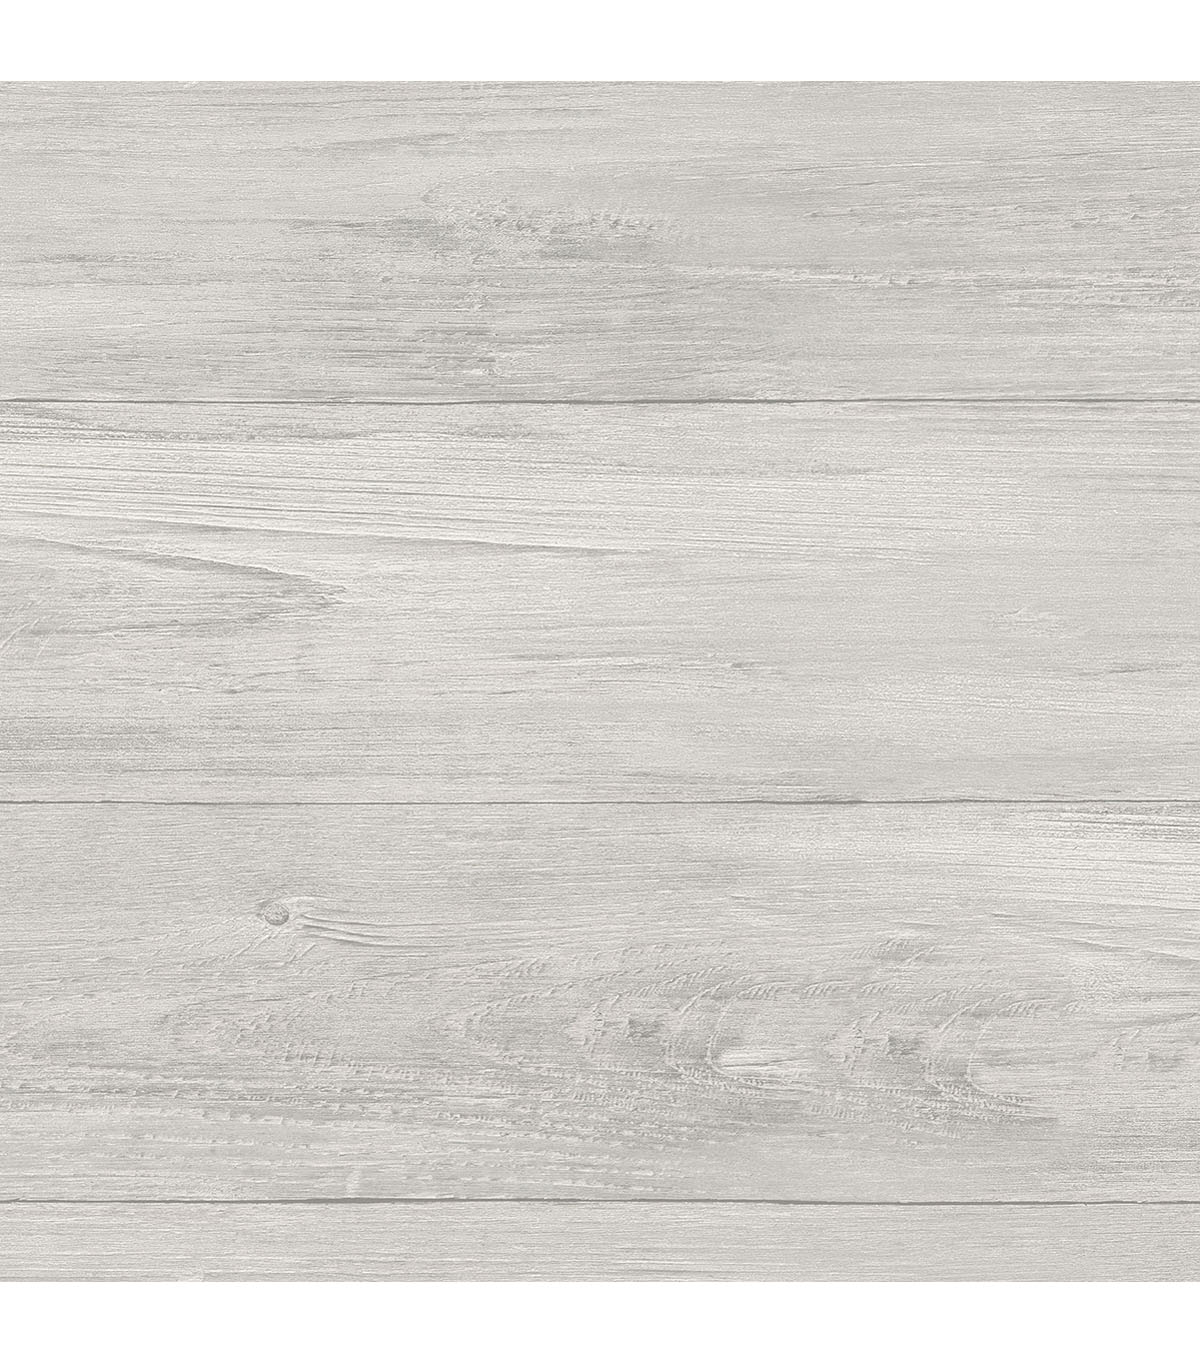 WallPops NuWallpaper Peel & Stick Wallpaper-Gray Wood Plank